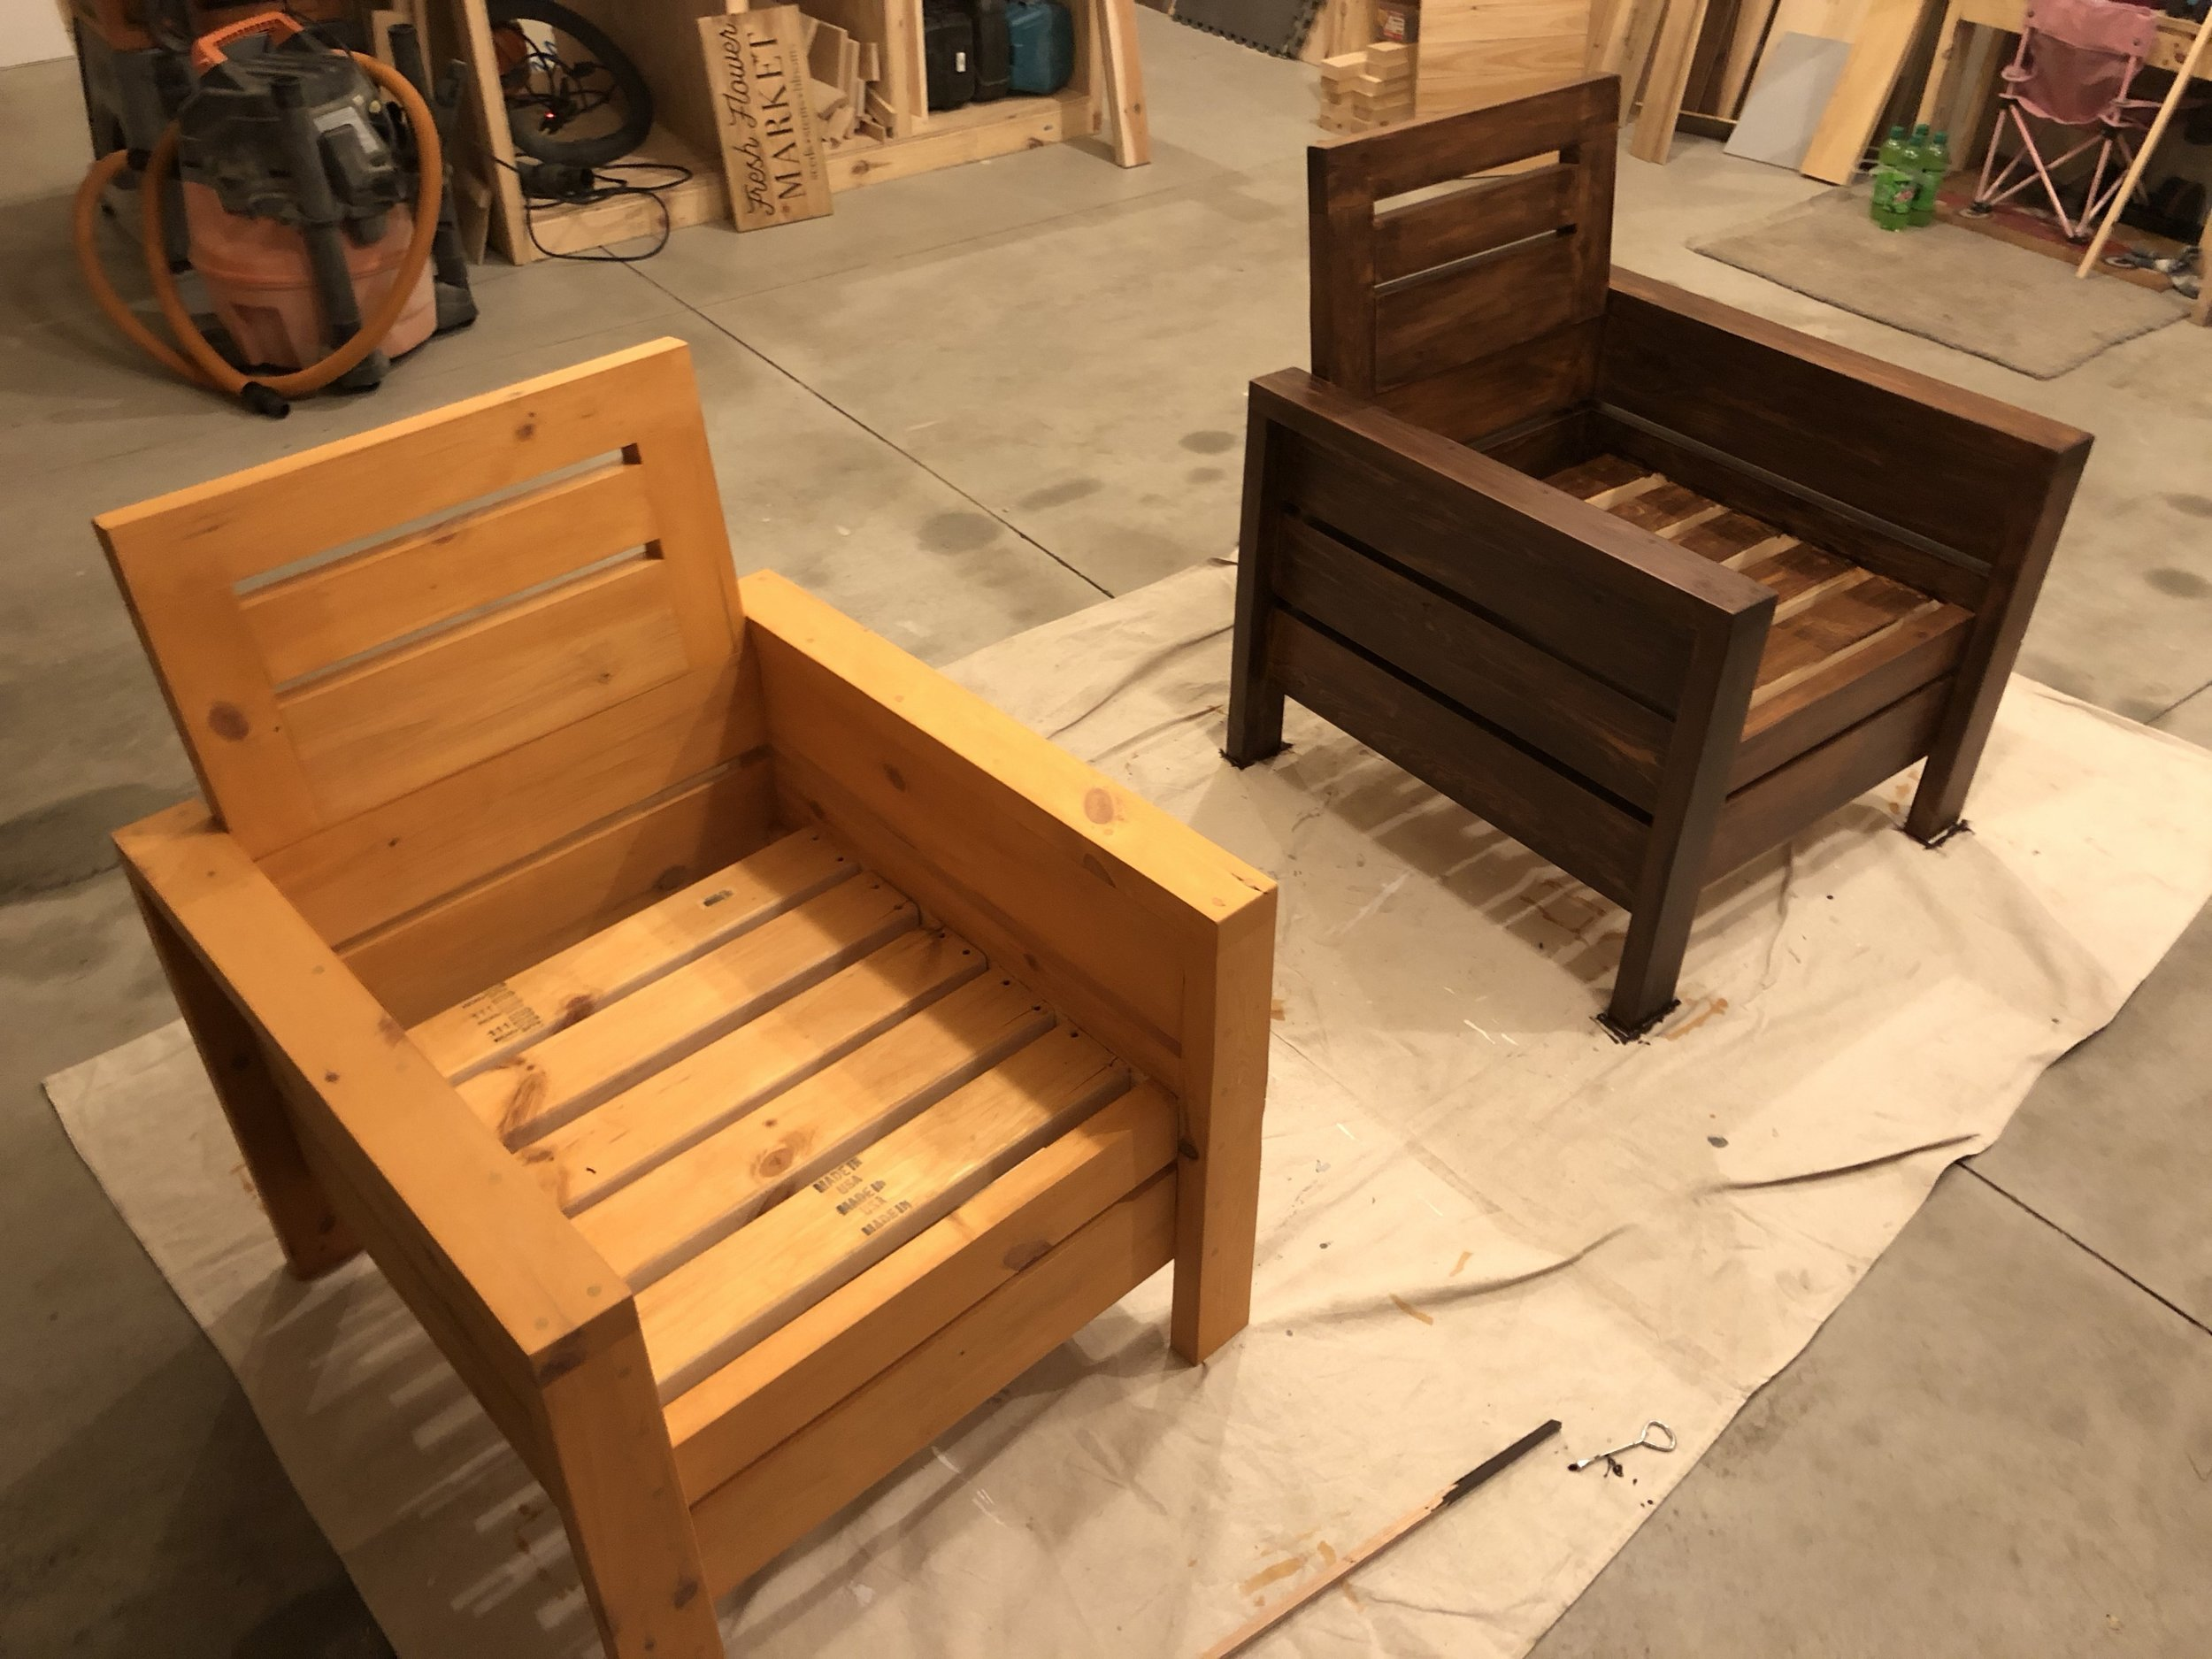 The chair on the left was stained using the original cedar colored stain. The chair on the right was stained with cedar, lightly sanded, and then stained again with a hickory colored stain. The chair color on the right is exactly what we were hoping for.